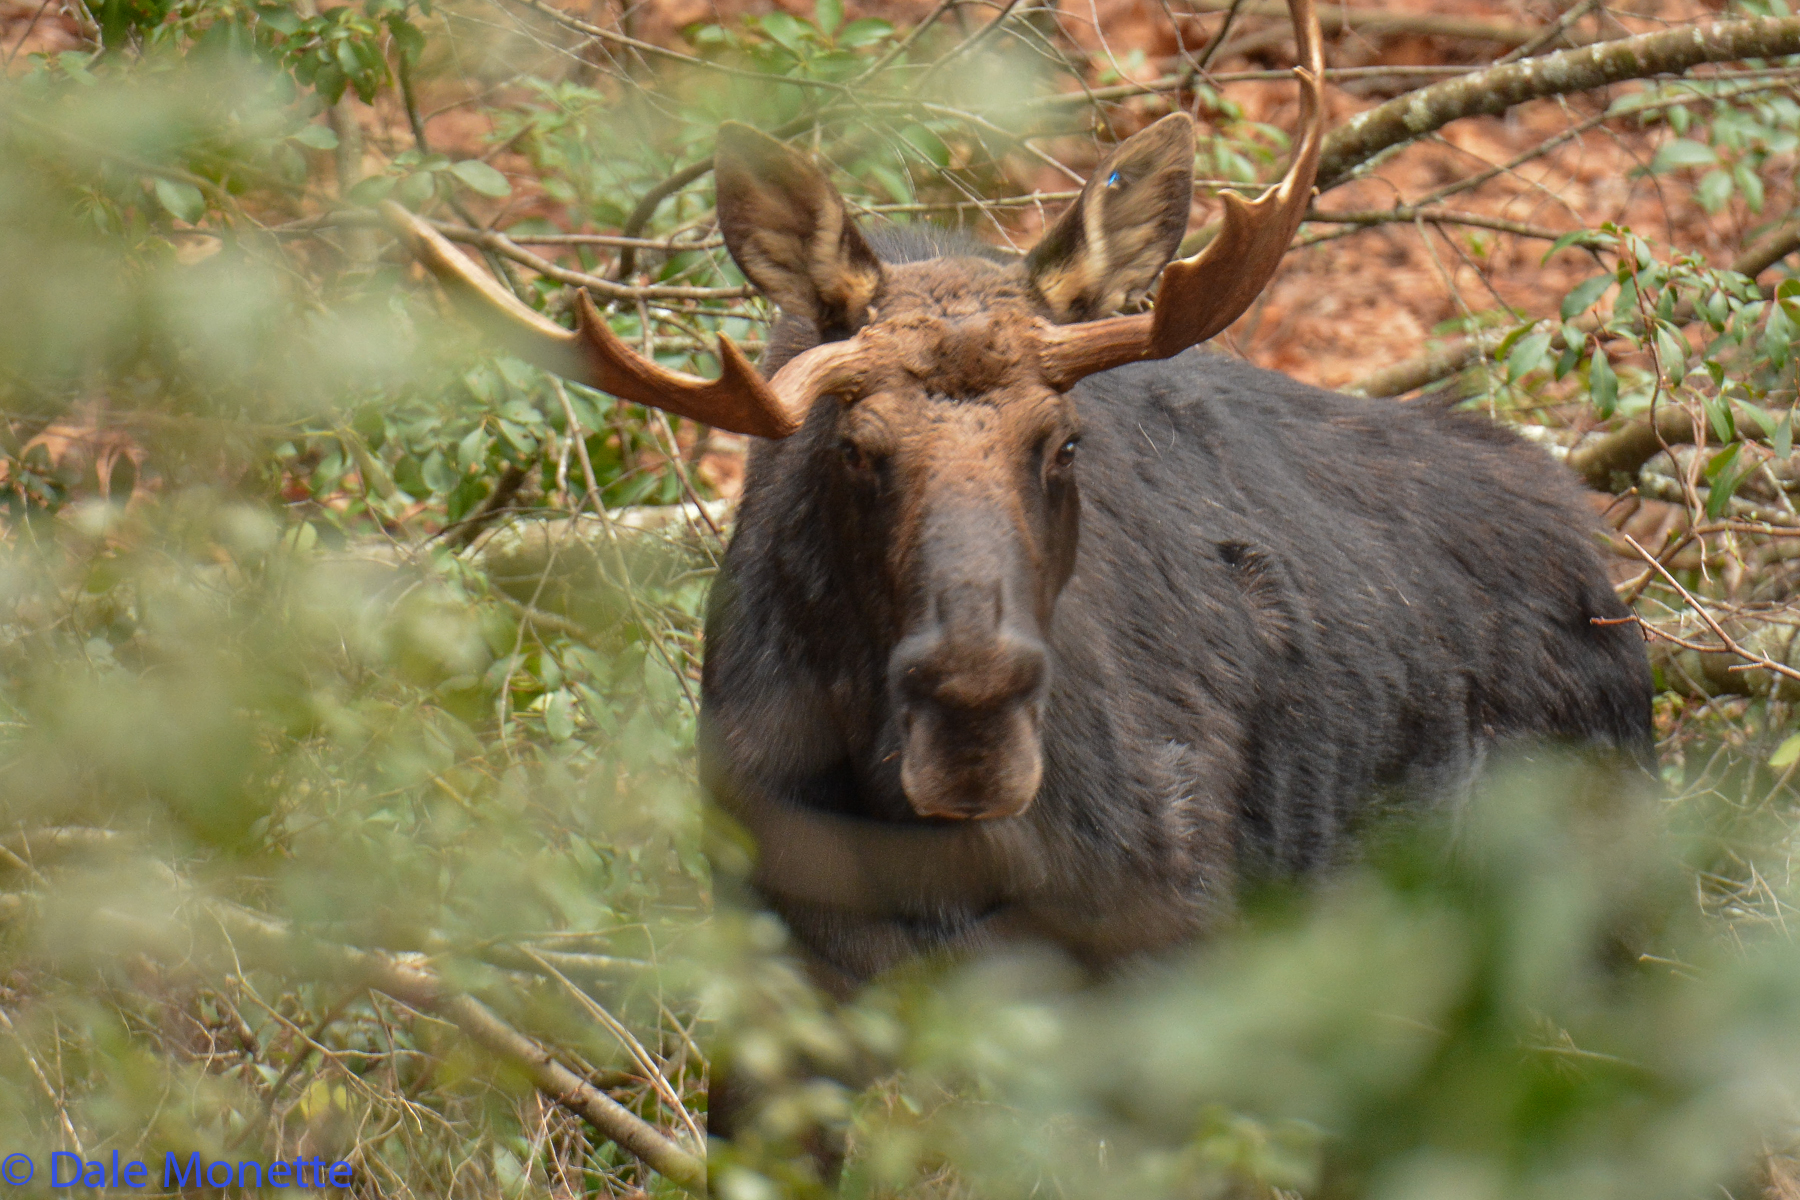 Another way to identify him is his antlers. They don't quite match do they?